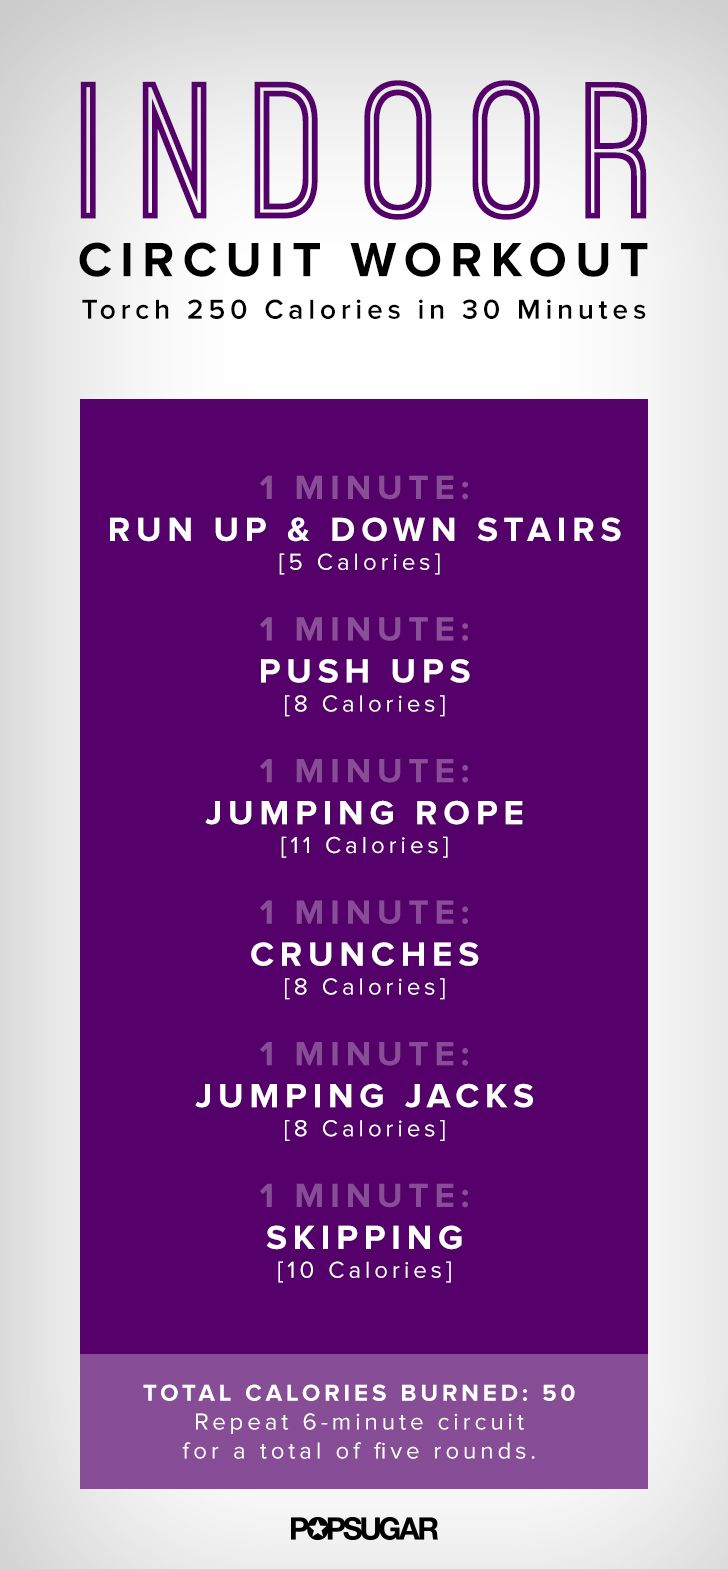 All you need for this 30 minutes indoor workout are a set of stairs, a jump rope, and space to skip around.